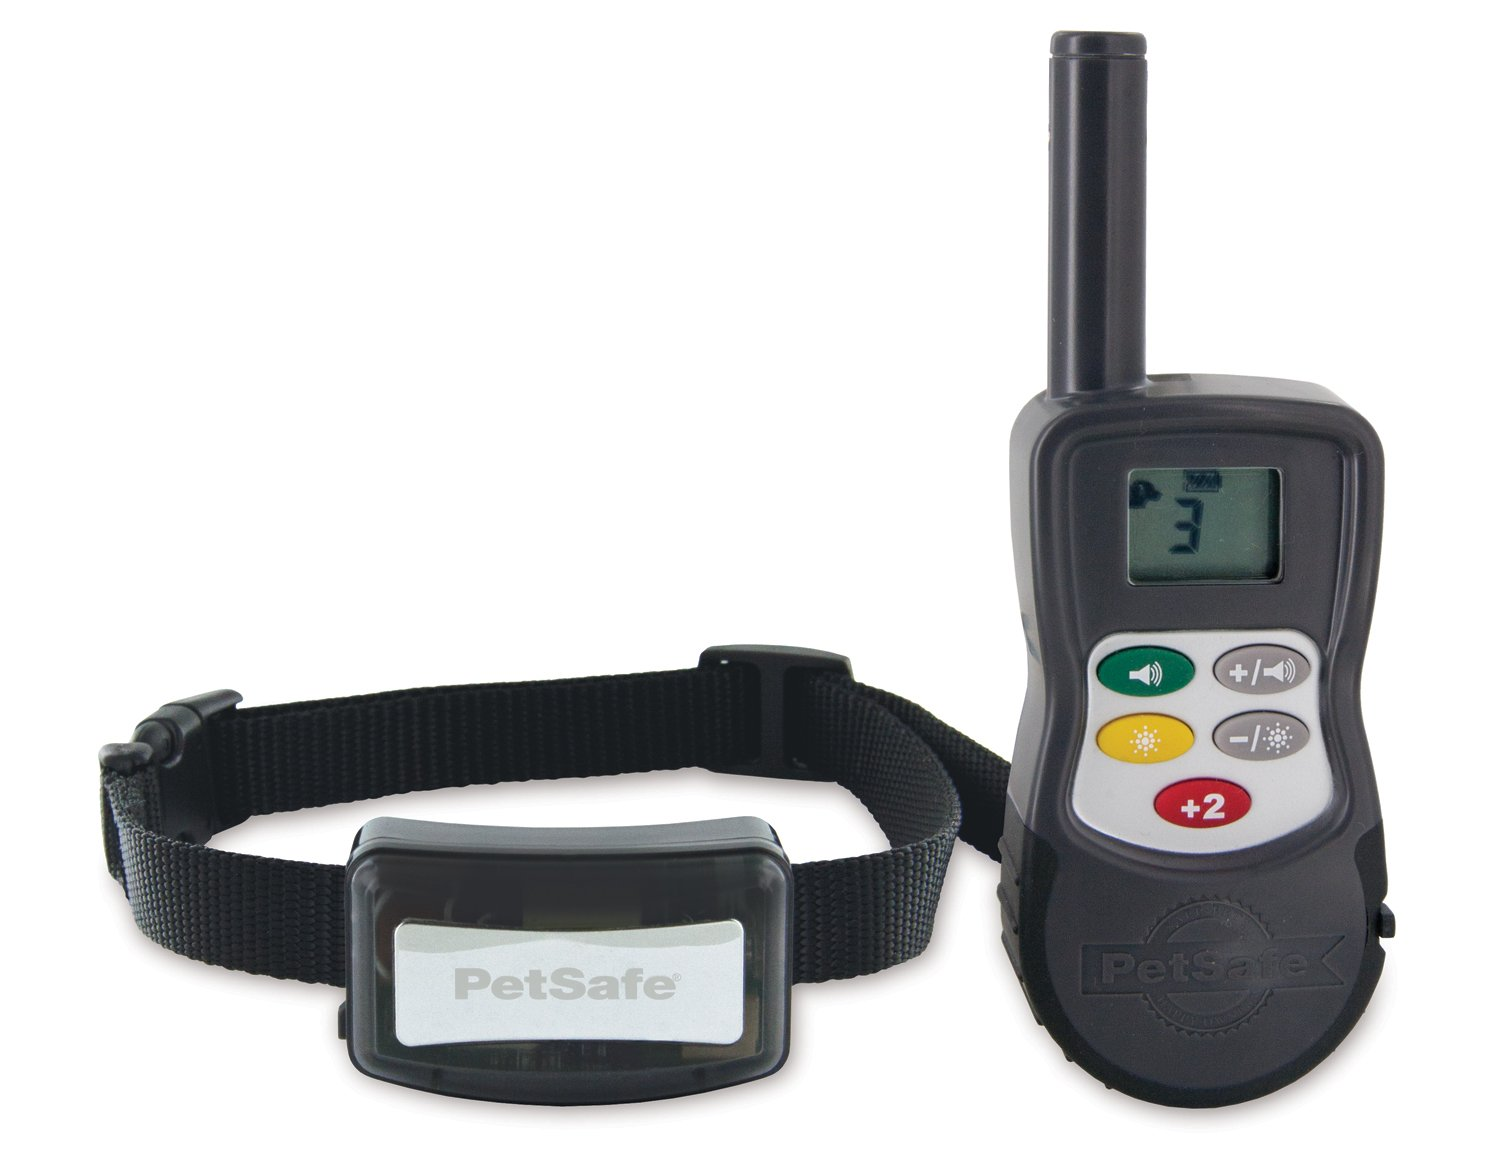 PetSafe Elite Little Dog Remote Trainer for Small and Medium Dogs under 40 lb. with Tone and Static Stimulation, Waterproof and Rechargeable, Up to 400 Yards of Range, Electronic K-9 E-Collar